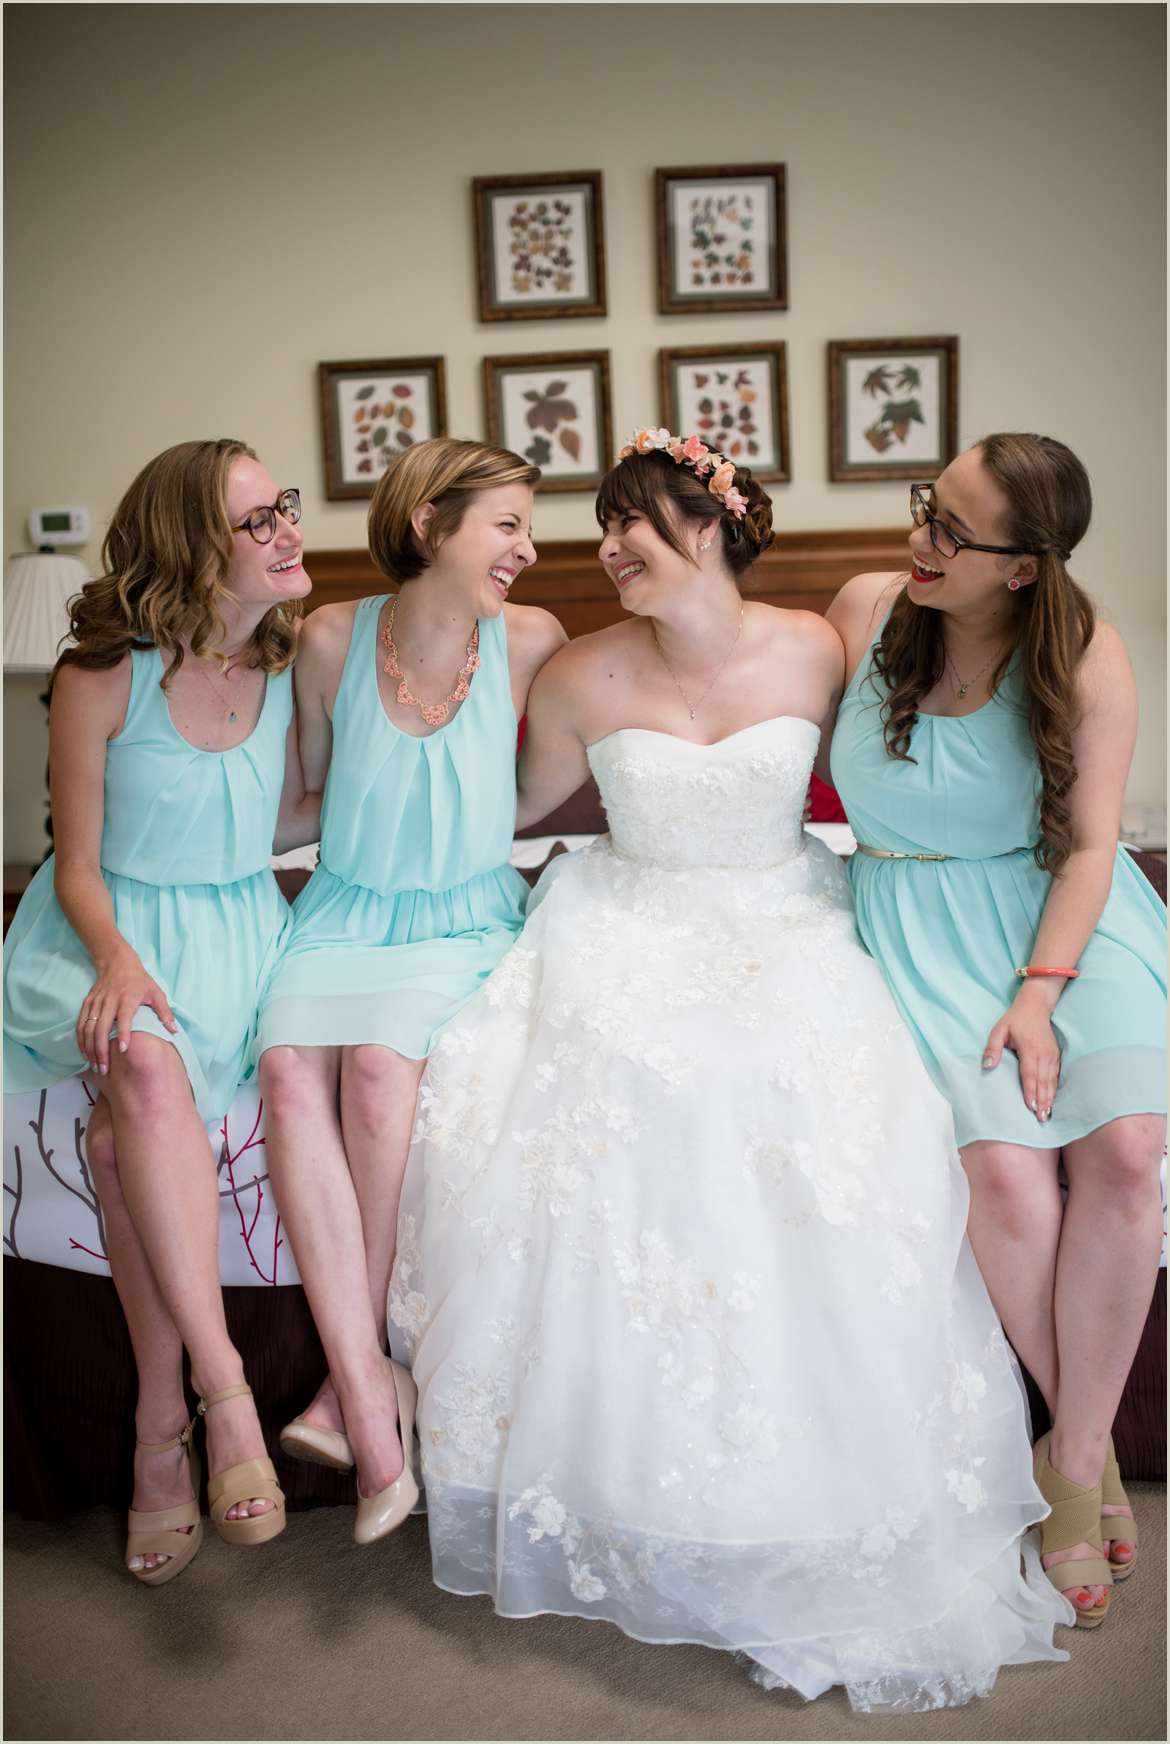 cute-photo-of-bride-and-bridesmaids-on-bed